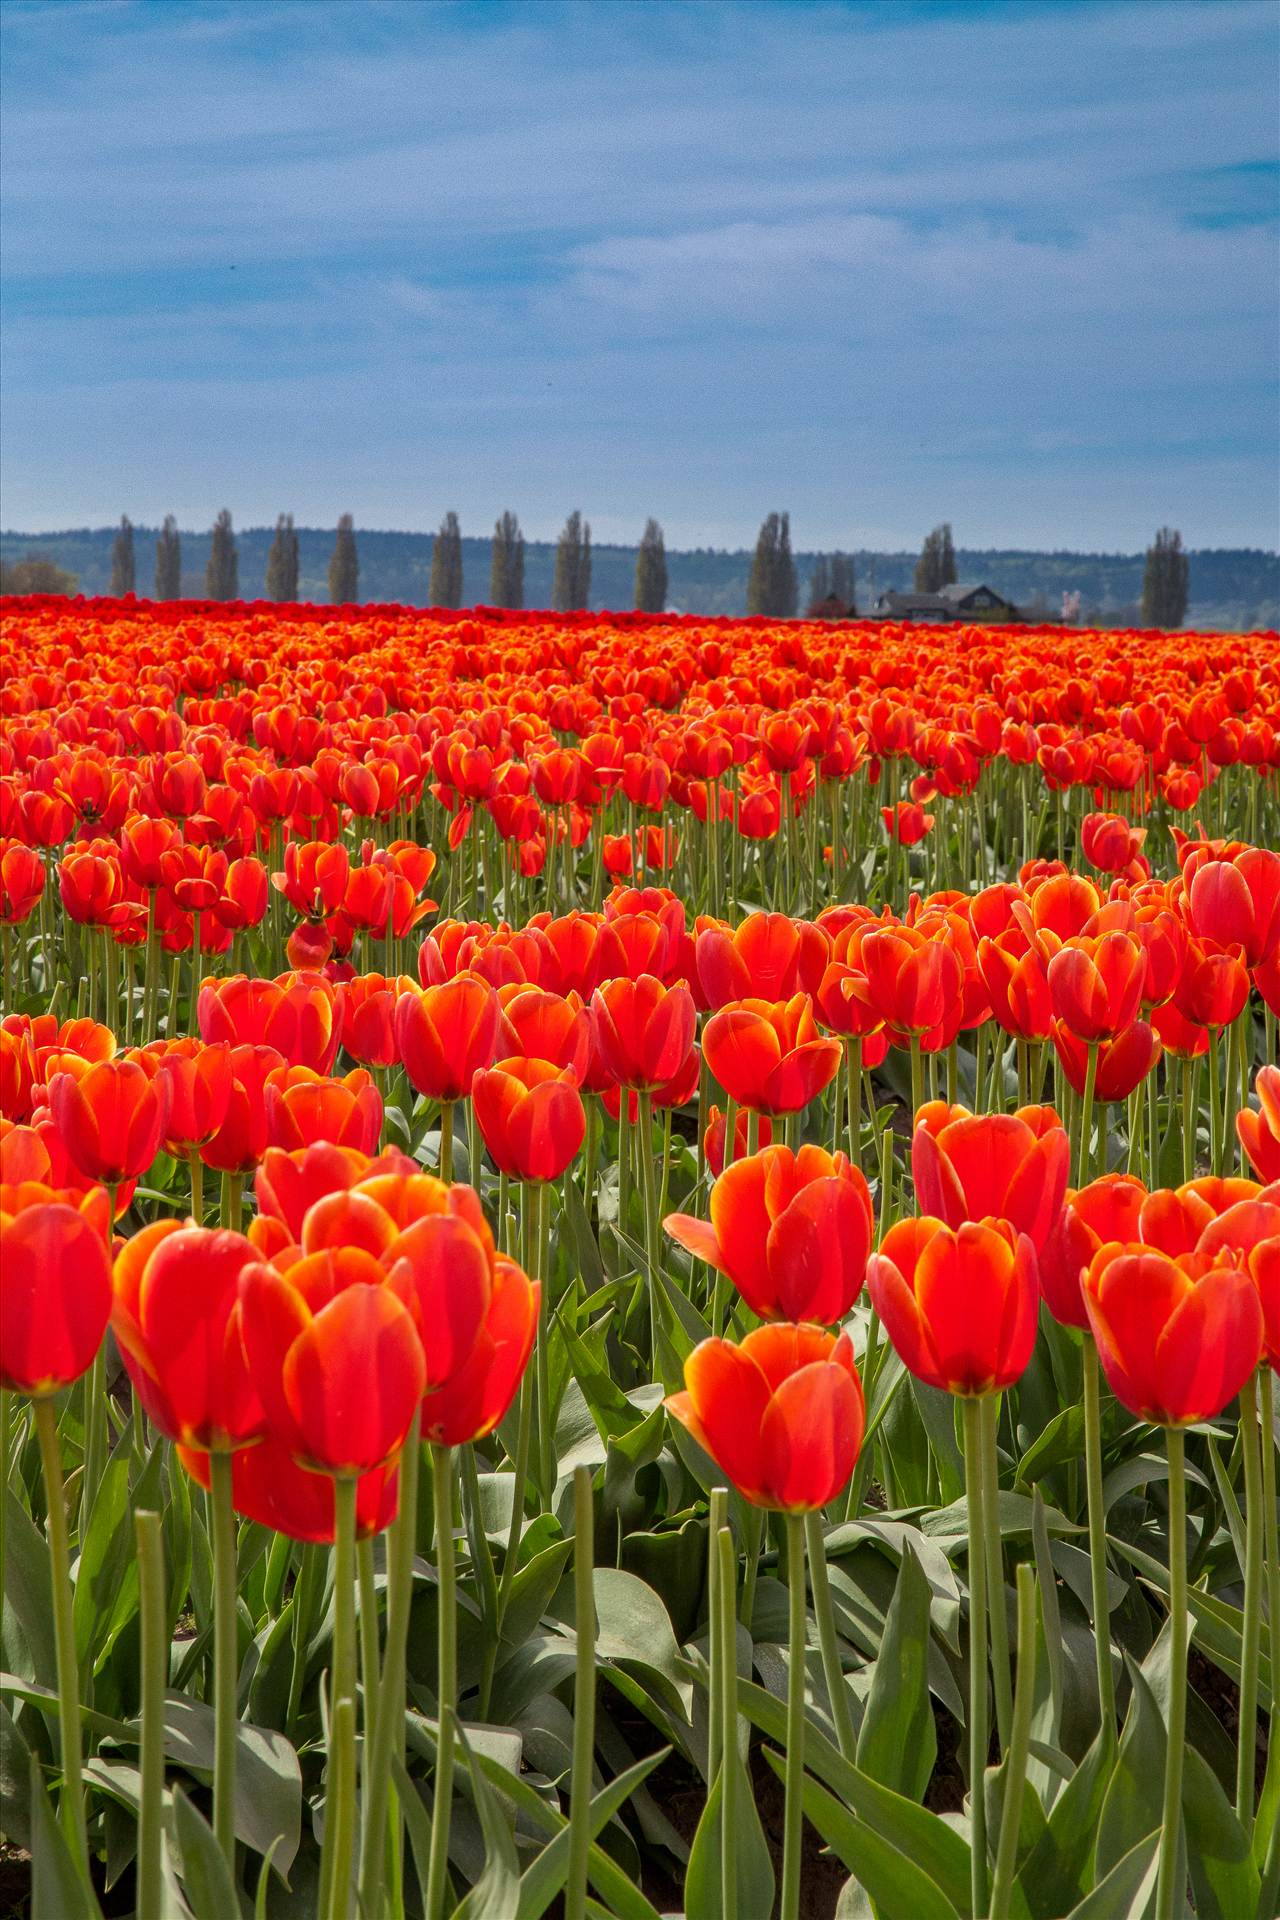 Standing Tall - From the 2012 Skagit County Tulip Festival. by D Scott Smith